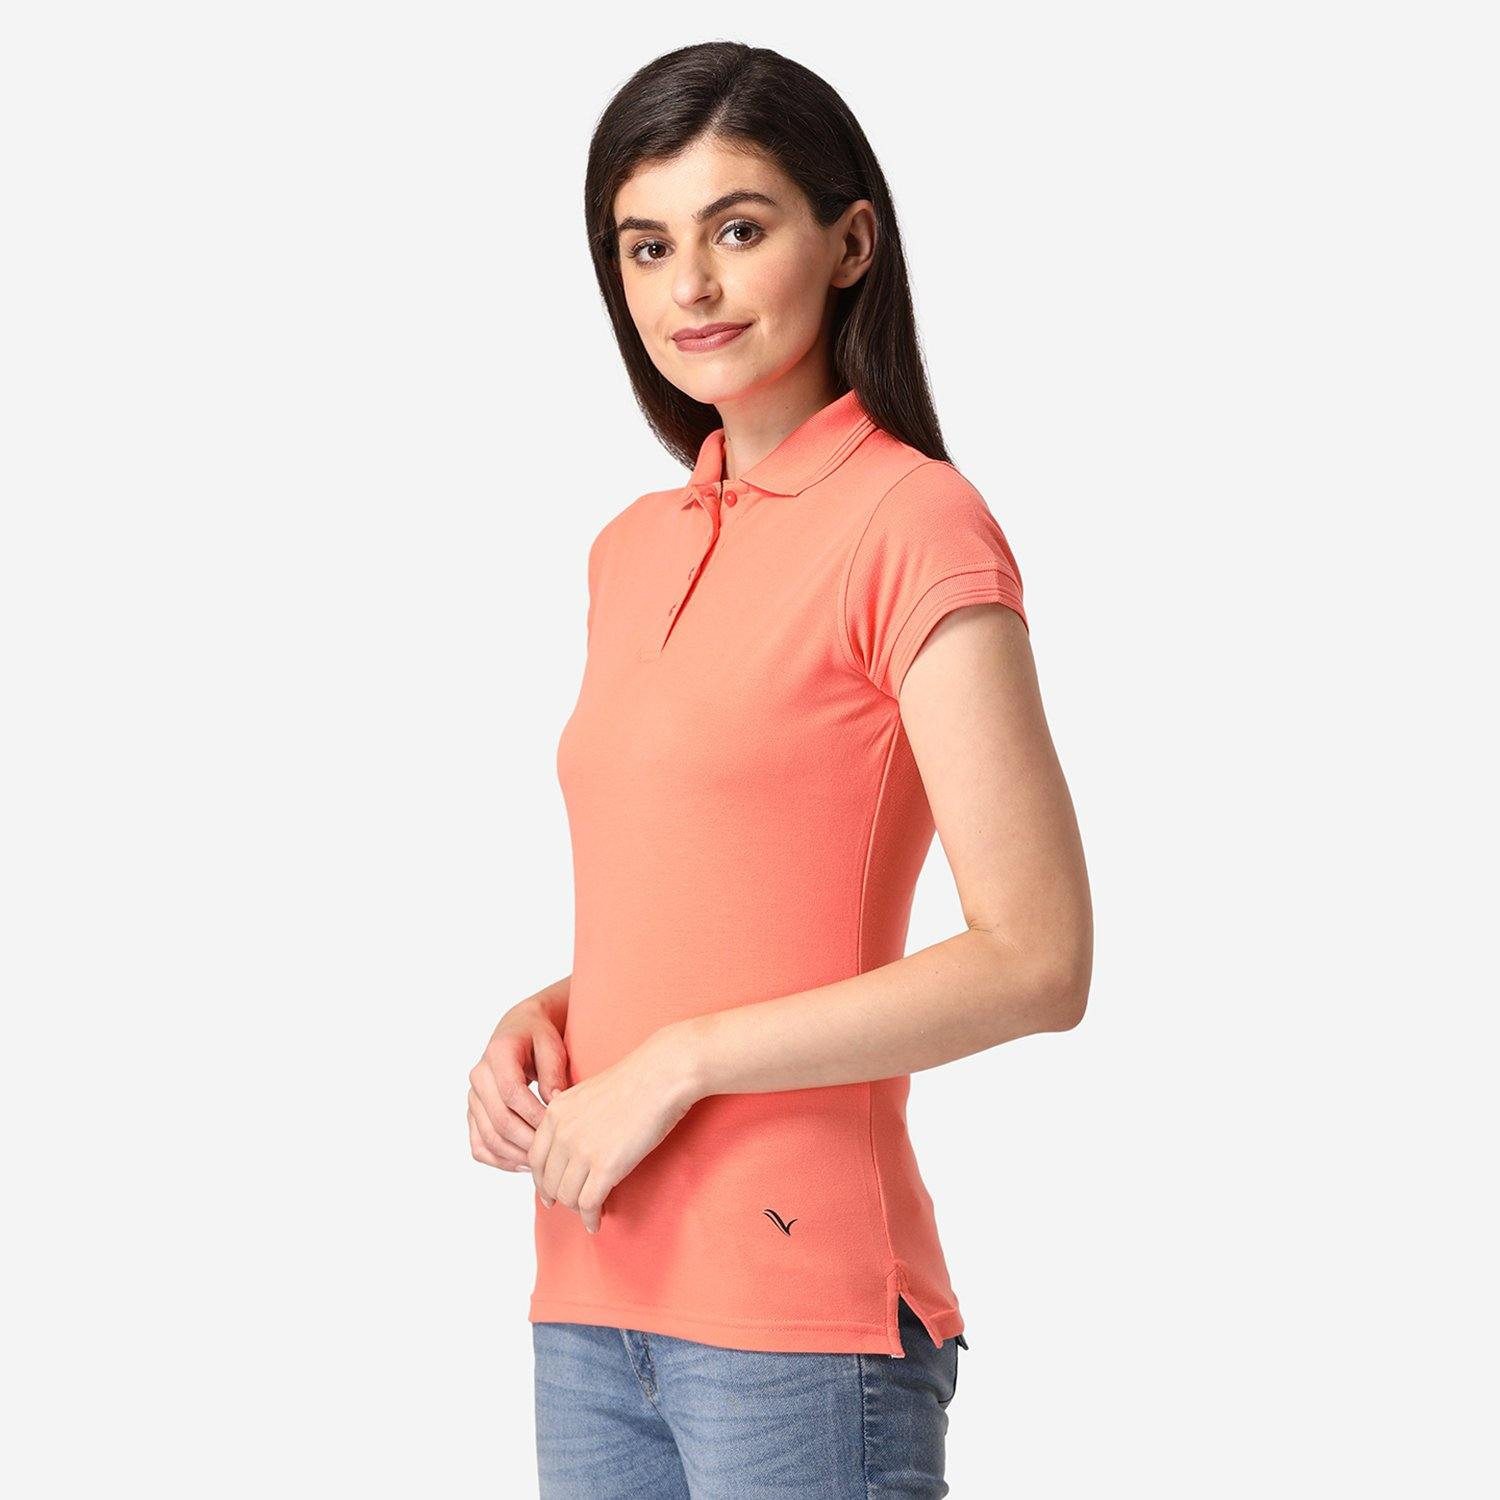 Women's Half Sleeve Polo T-Shirt  - Salmon